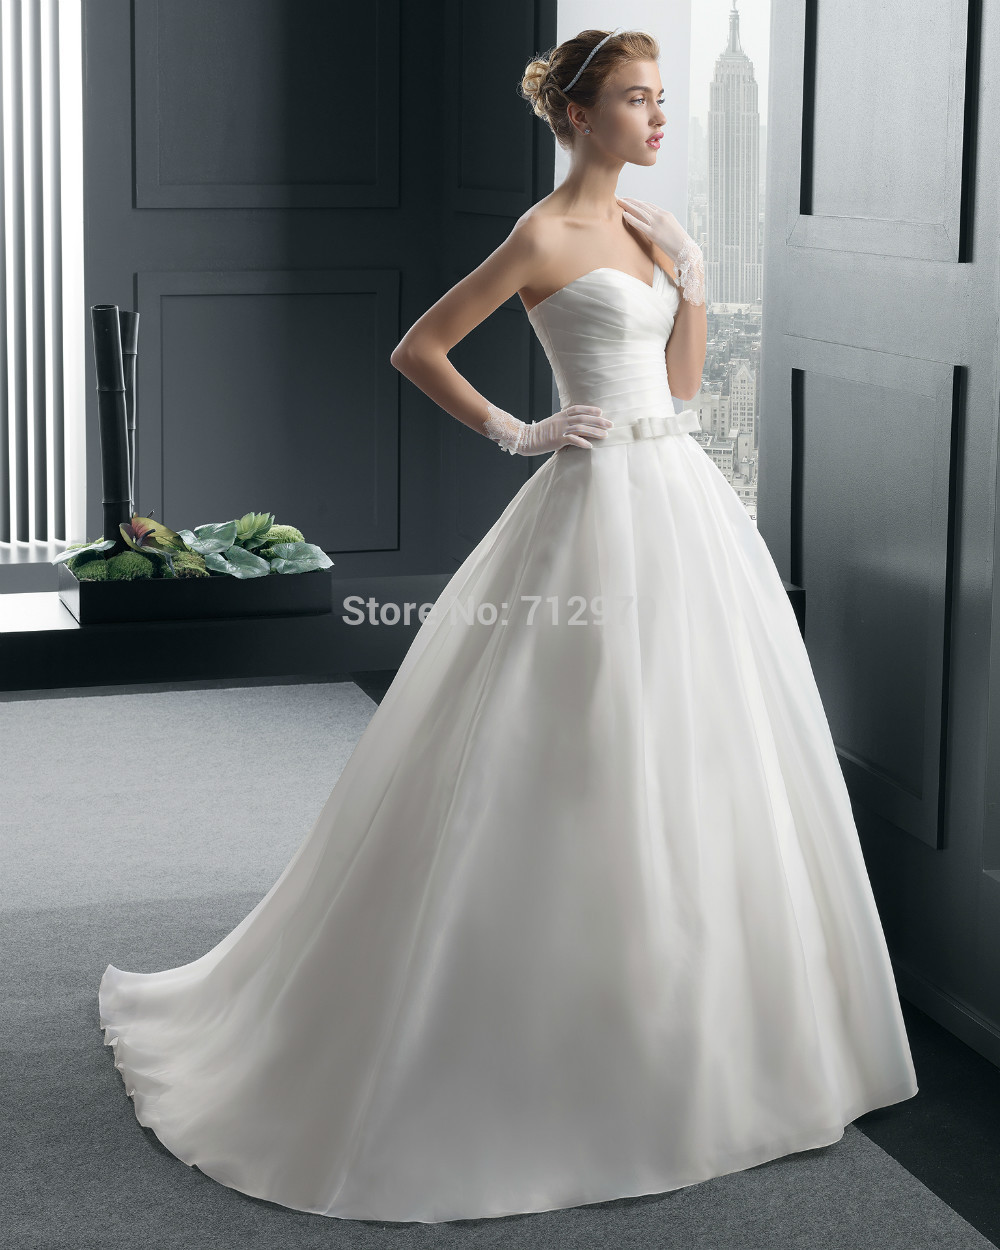 ... white ivory Wedding dress Bridal Gown Hochzeitskleid robe de mariee